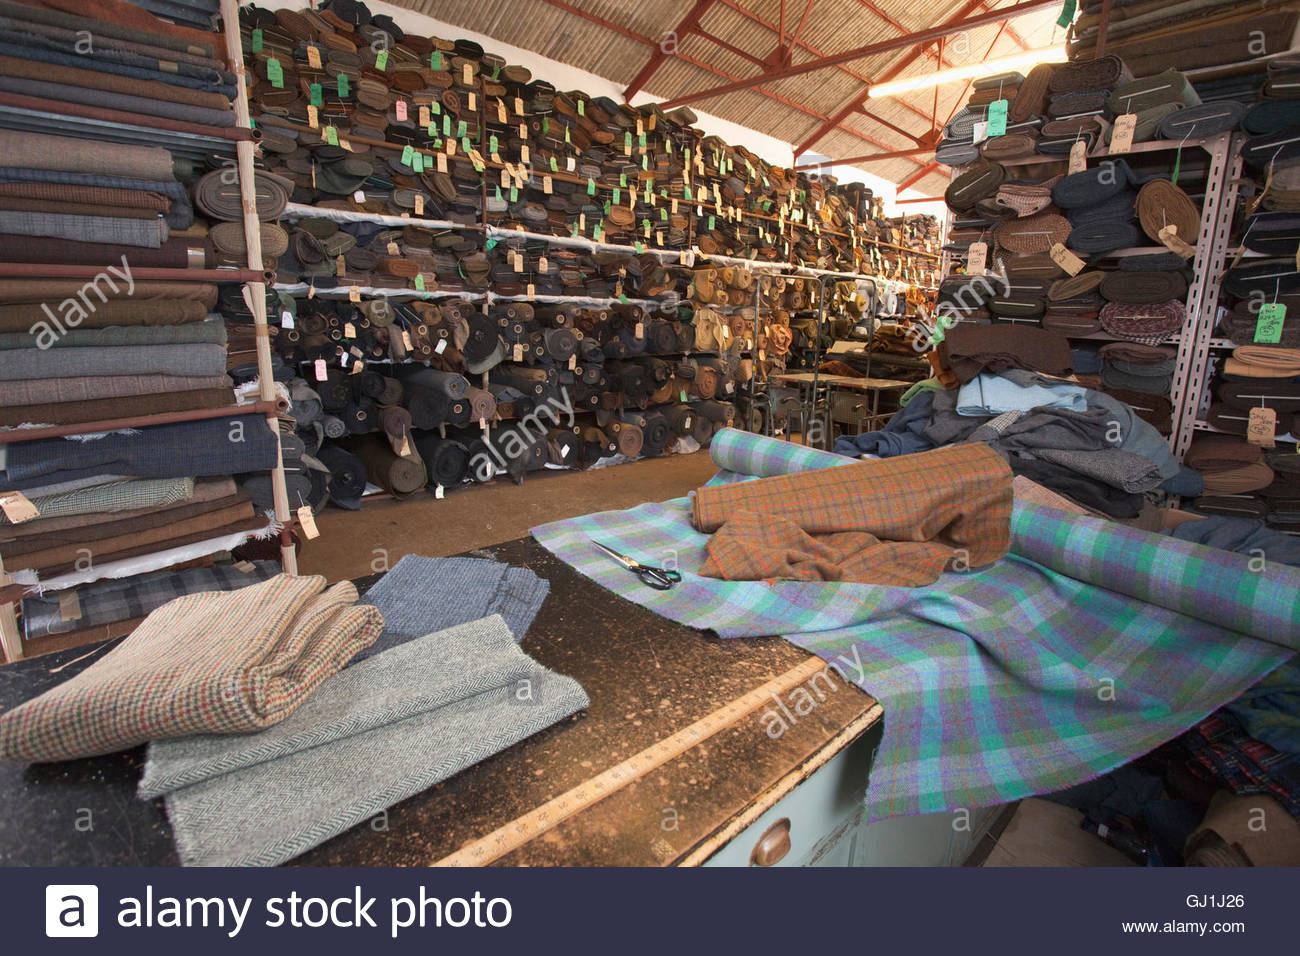 Part of the huge stock of woven Harris Tweed cloth at the Harris Tweed and Knitwear Shop, Tarbert, Isle of Harris, - Stock Image